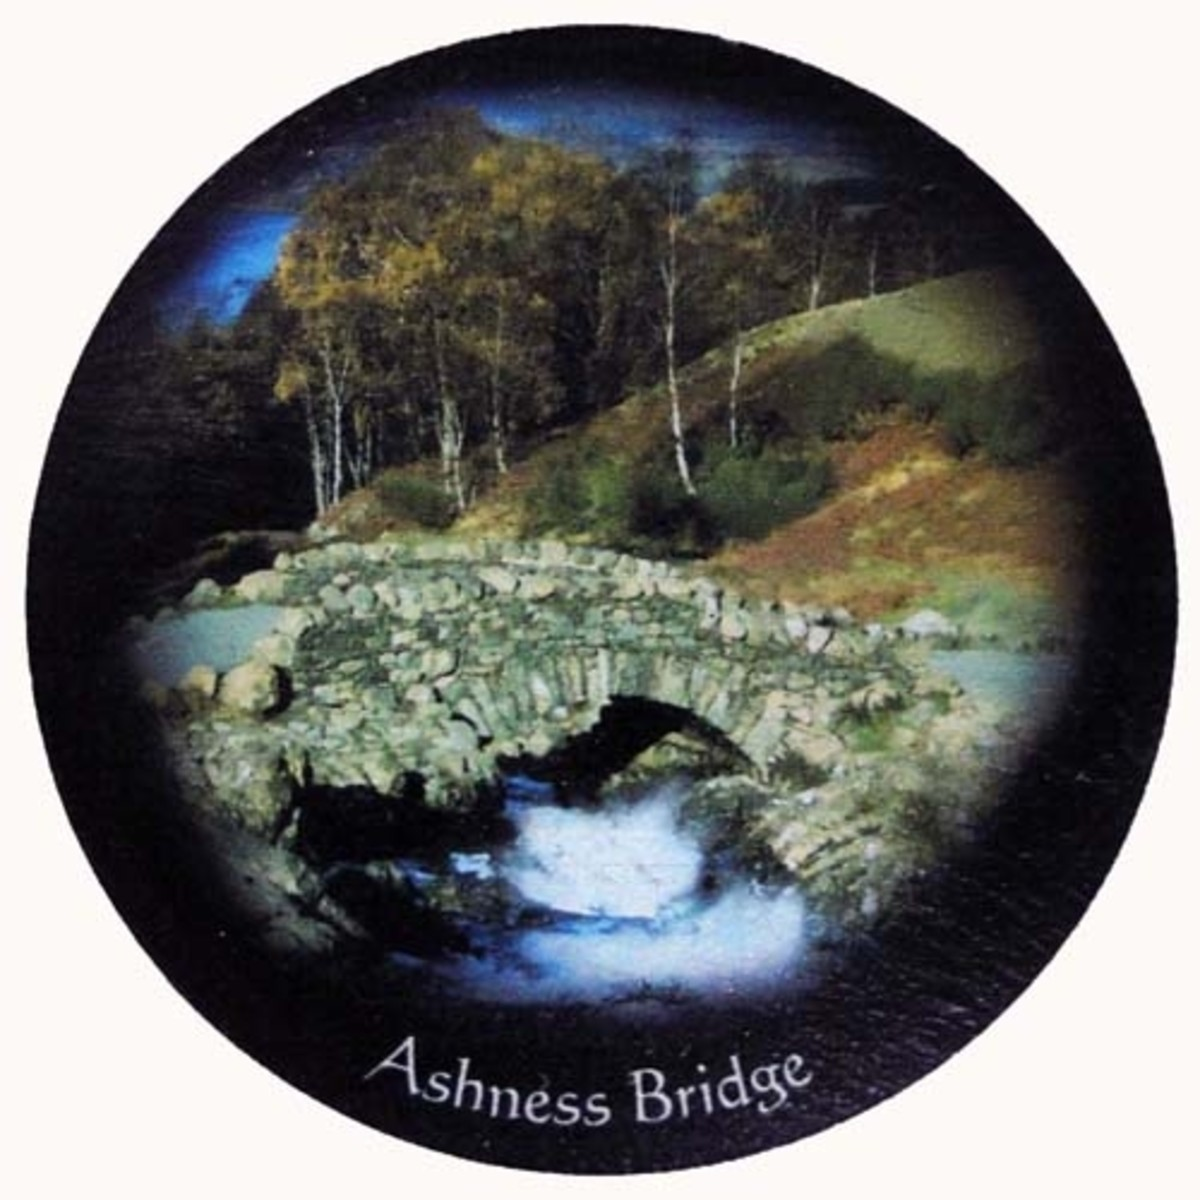 Slate coaster of Ashness Bridge, Lake District, England